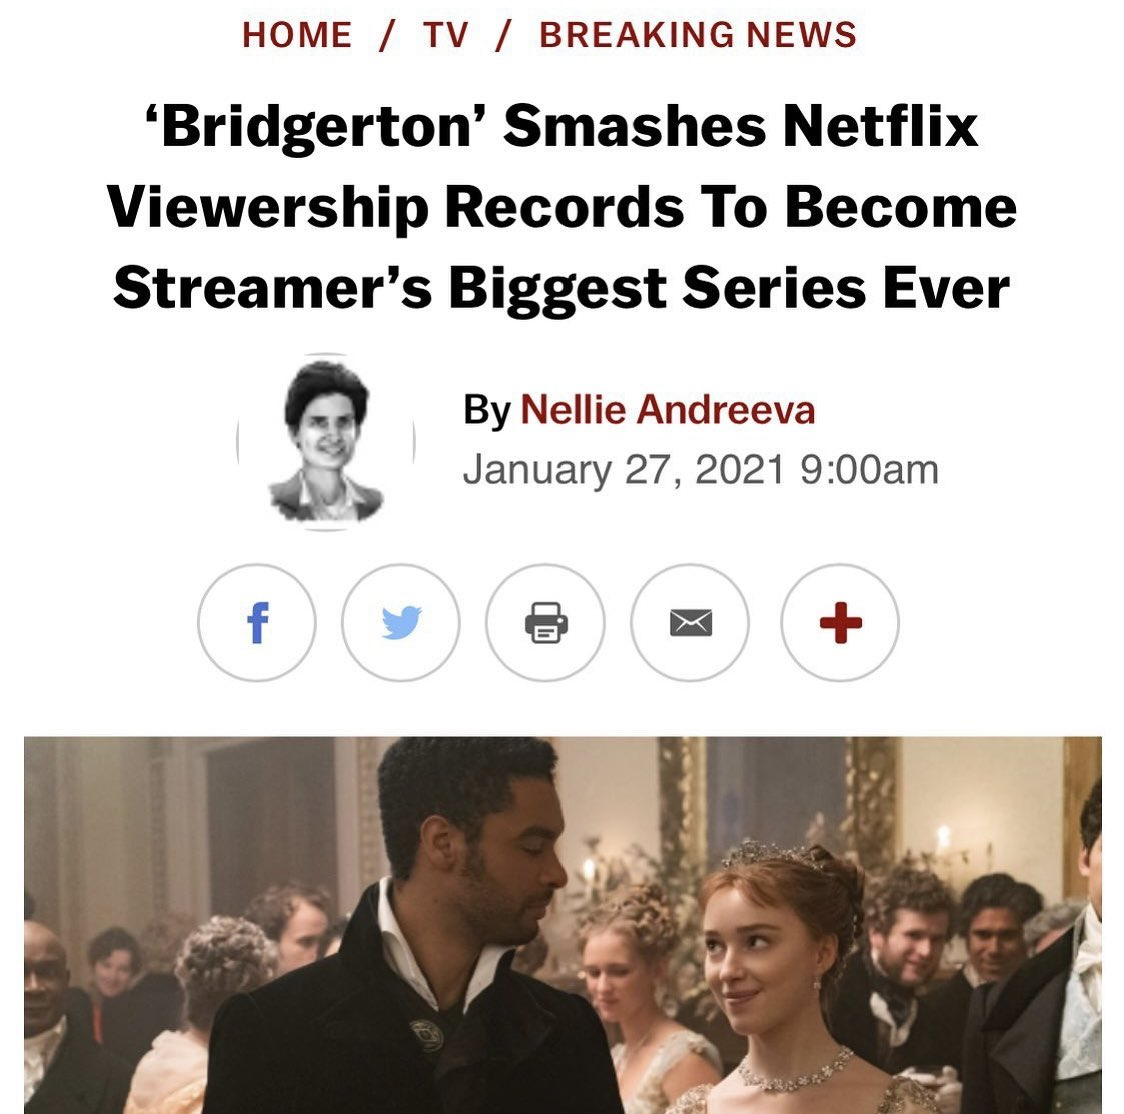 Leaving your first network, getting a huge overall deal with a new studio and, as a result of that overall deal, putting up numbers like this with your first at-bat   is some G shit.   No other way to put it.